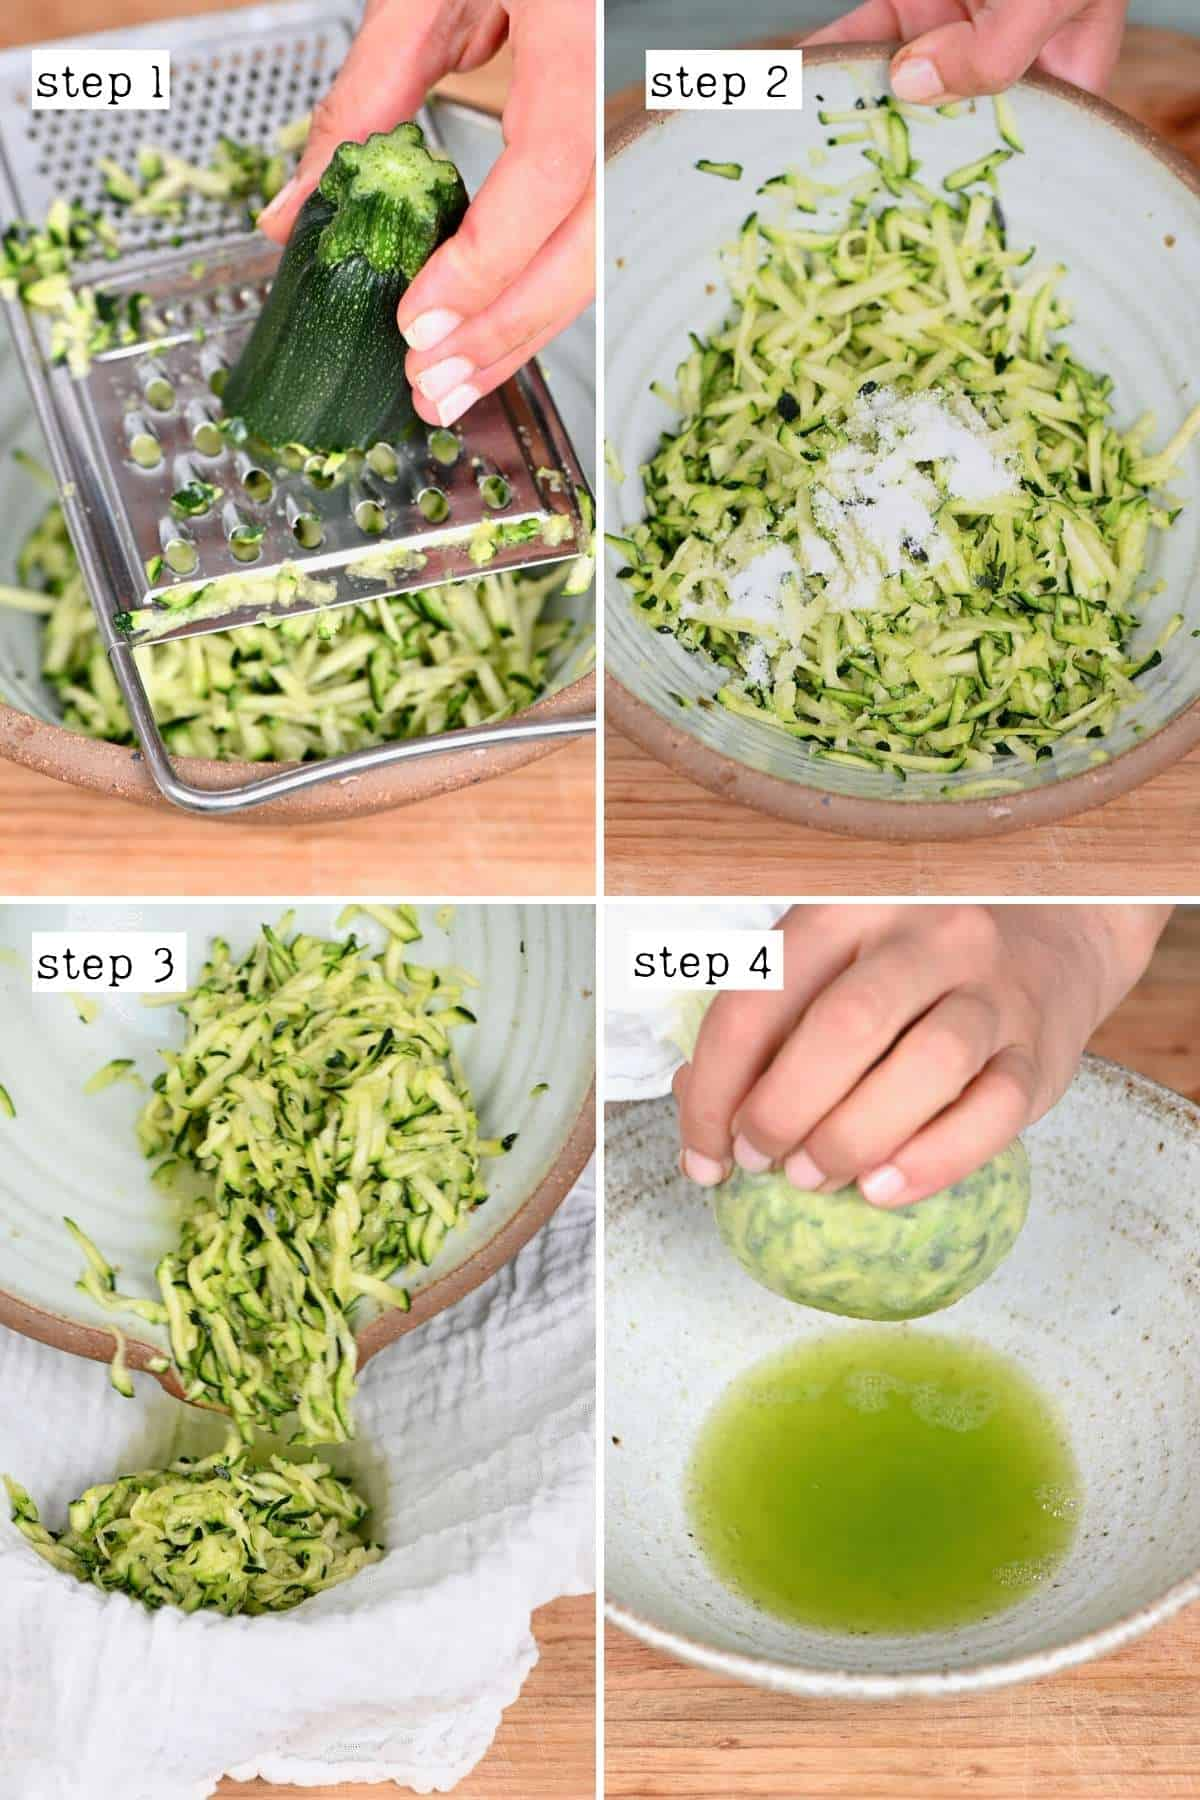 Steps for grating and salting a zucchini